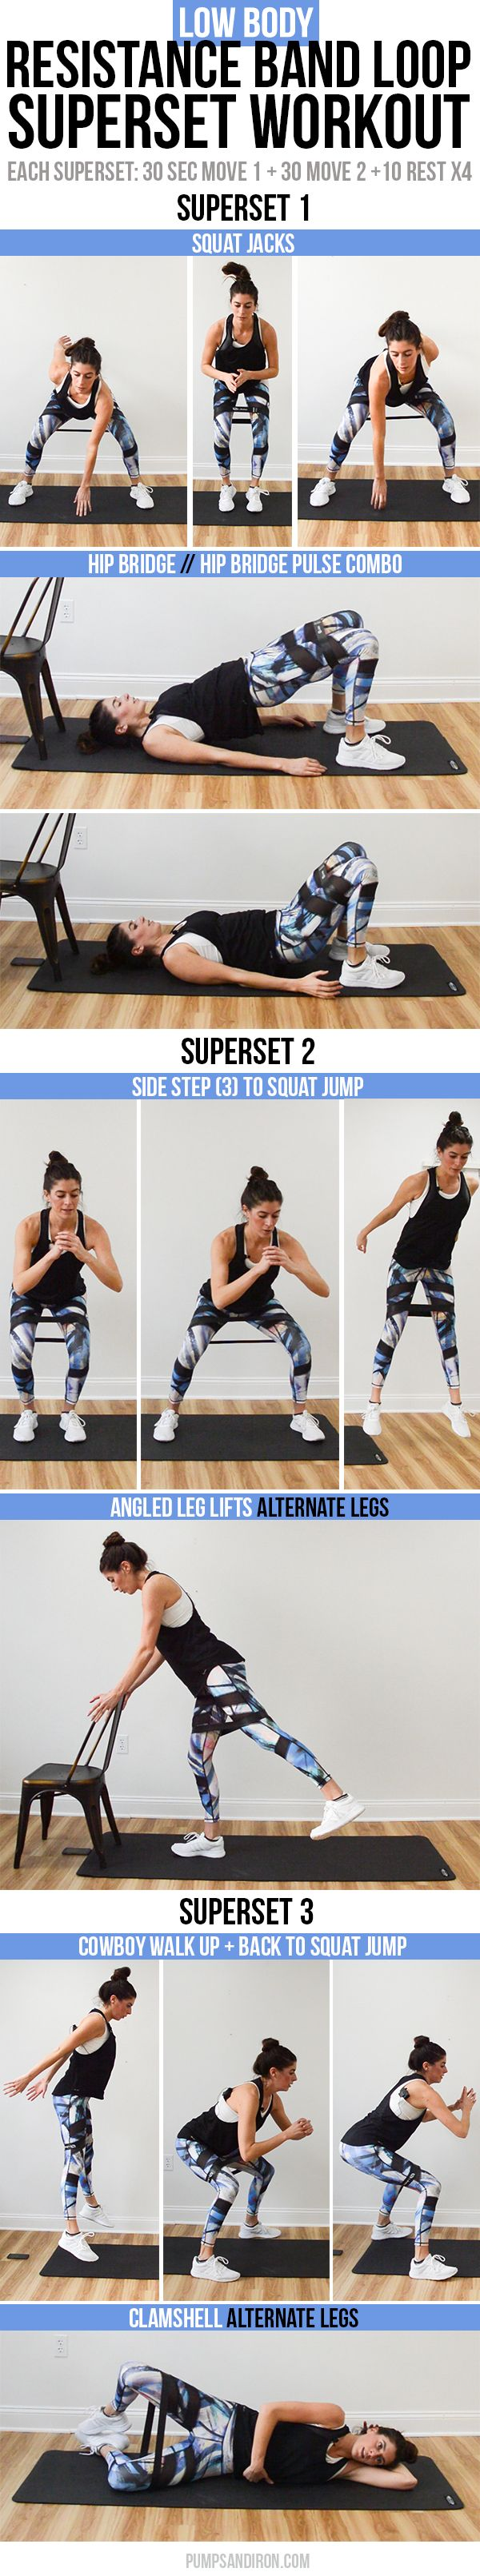 Resistance Band Loop Superset Workout -- focus is on butt & thighs, only 15 minutes long